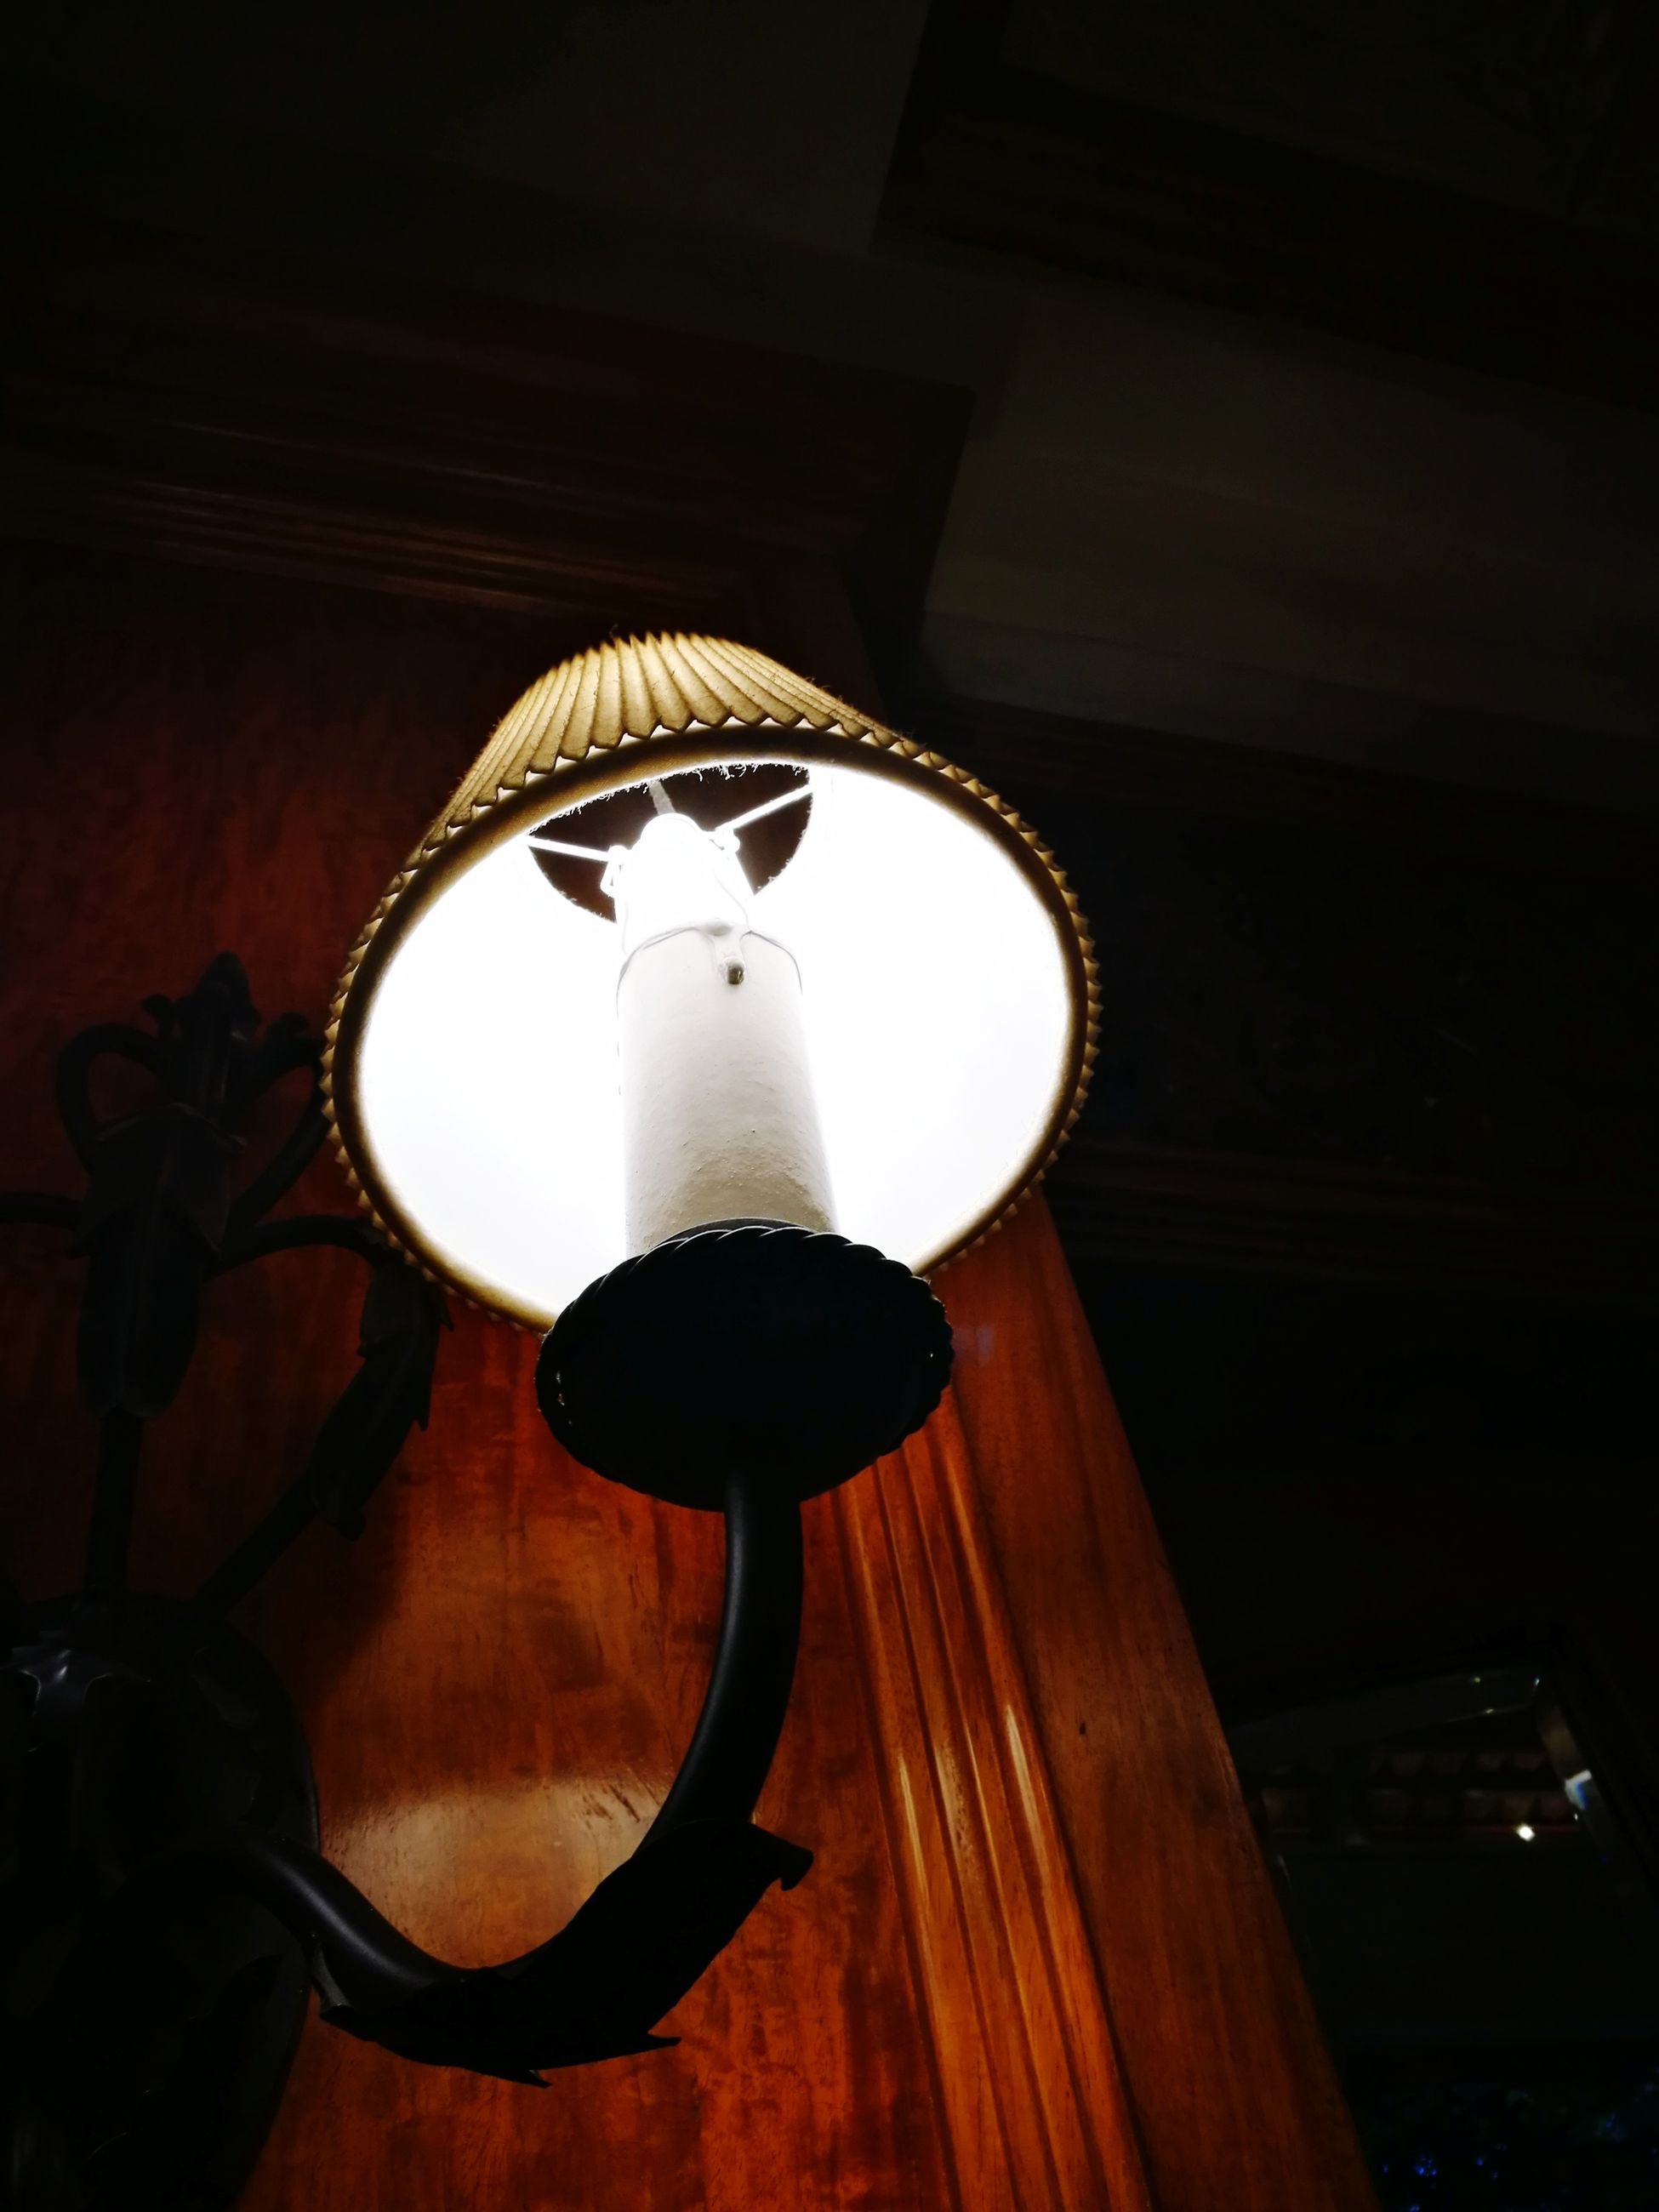 lighting equipment, indoors, hanging, illuminated, no people, low angle view, wood - material, lamp shade, electricity, home interior, close-up, night